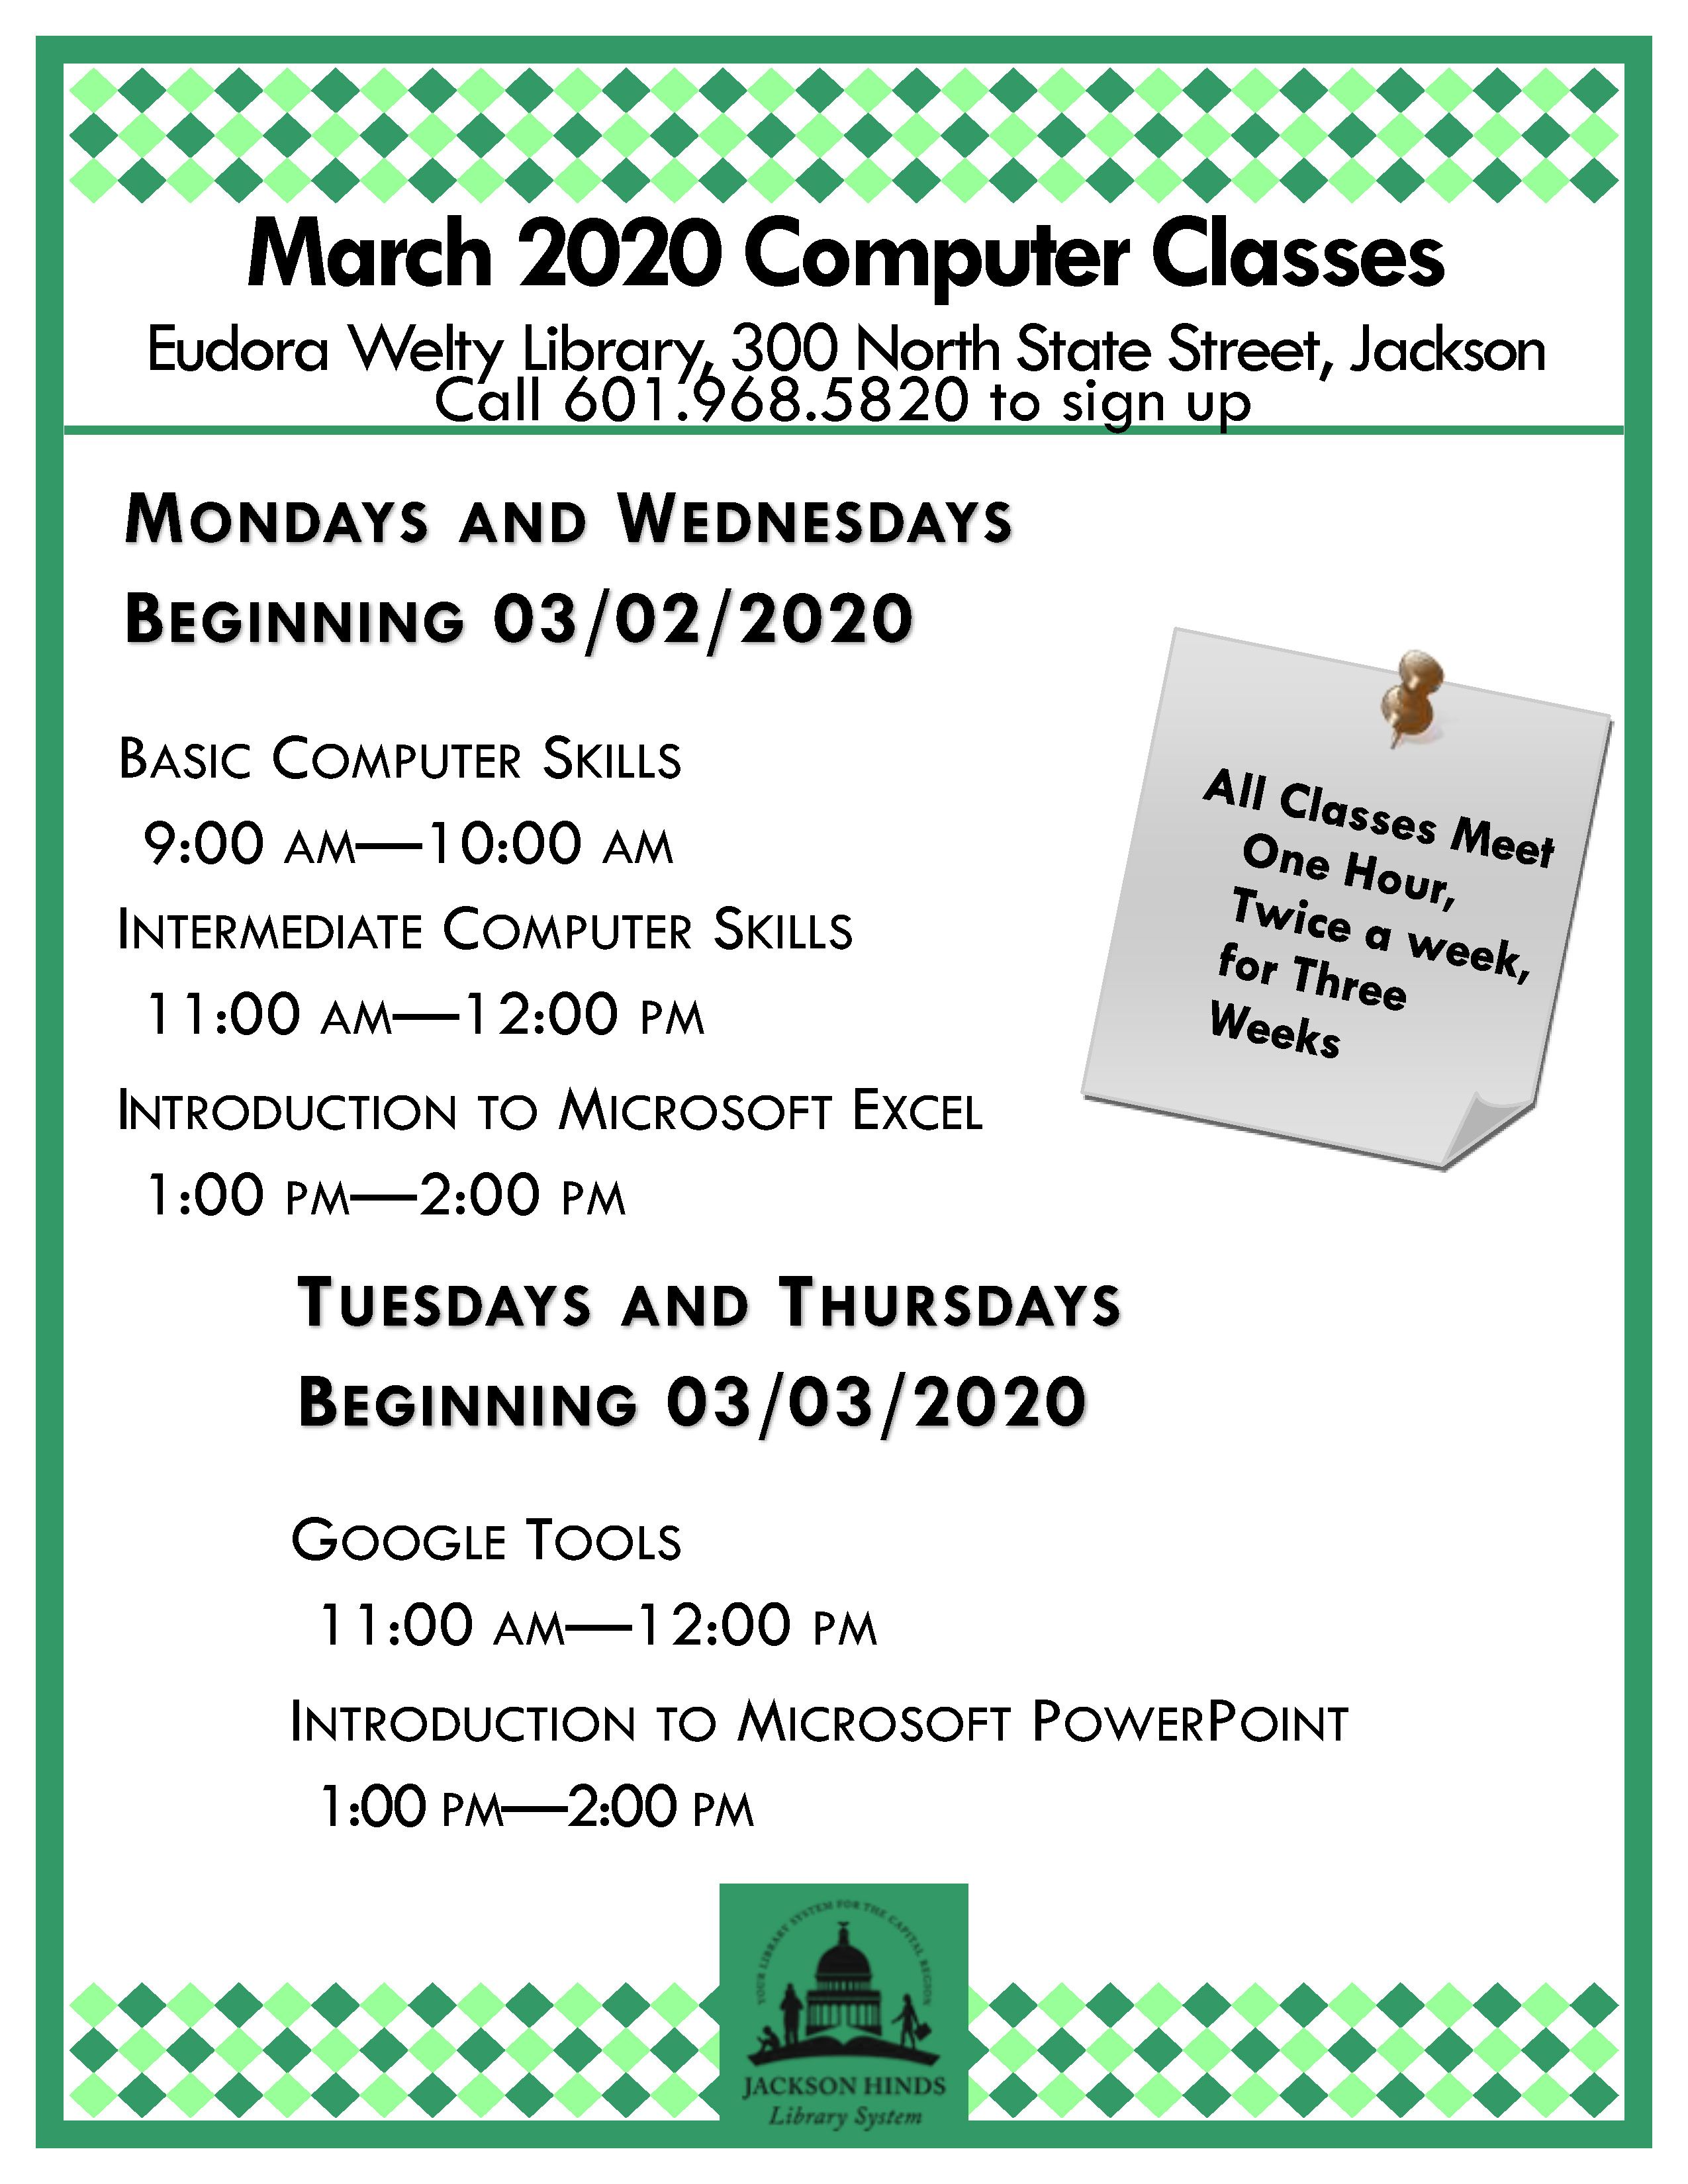 Registration Is Now Open For March 2020 Computer Classes At Eudora Welty Library These Free Classes For Ad Computer Class Register For Classes Computer Skills How to open excel read only